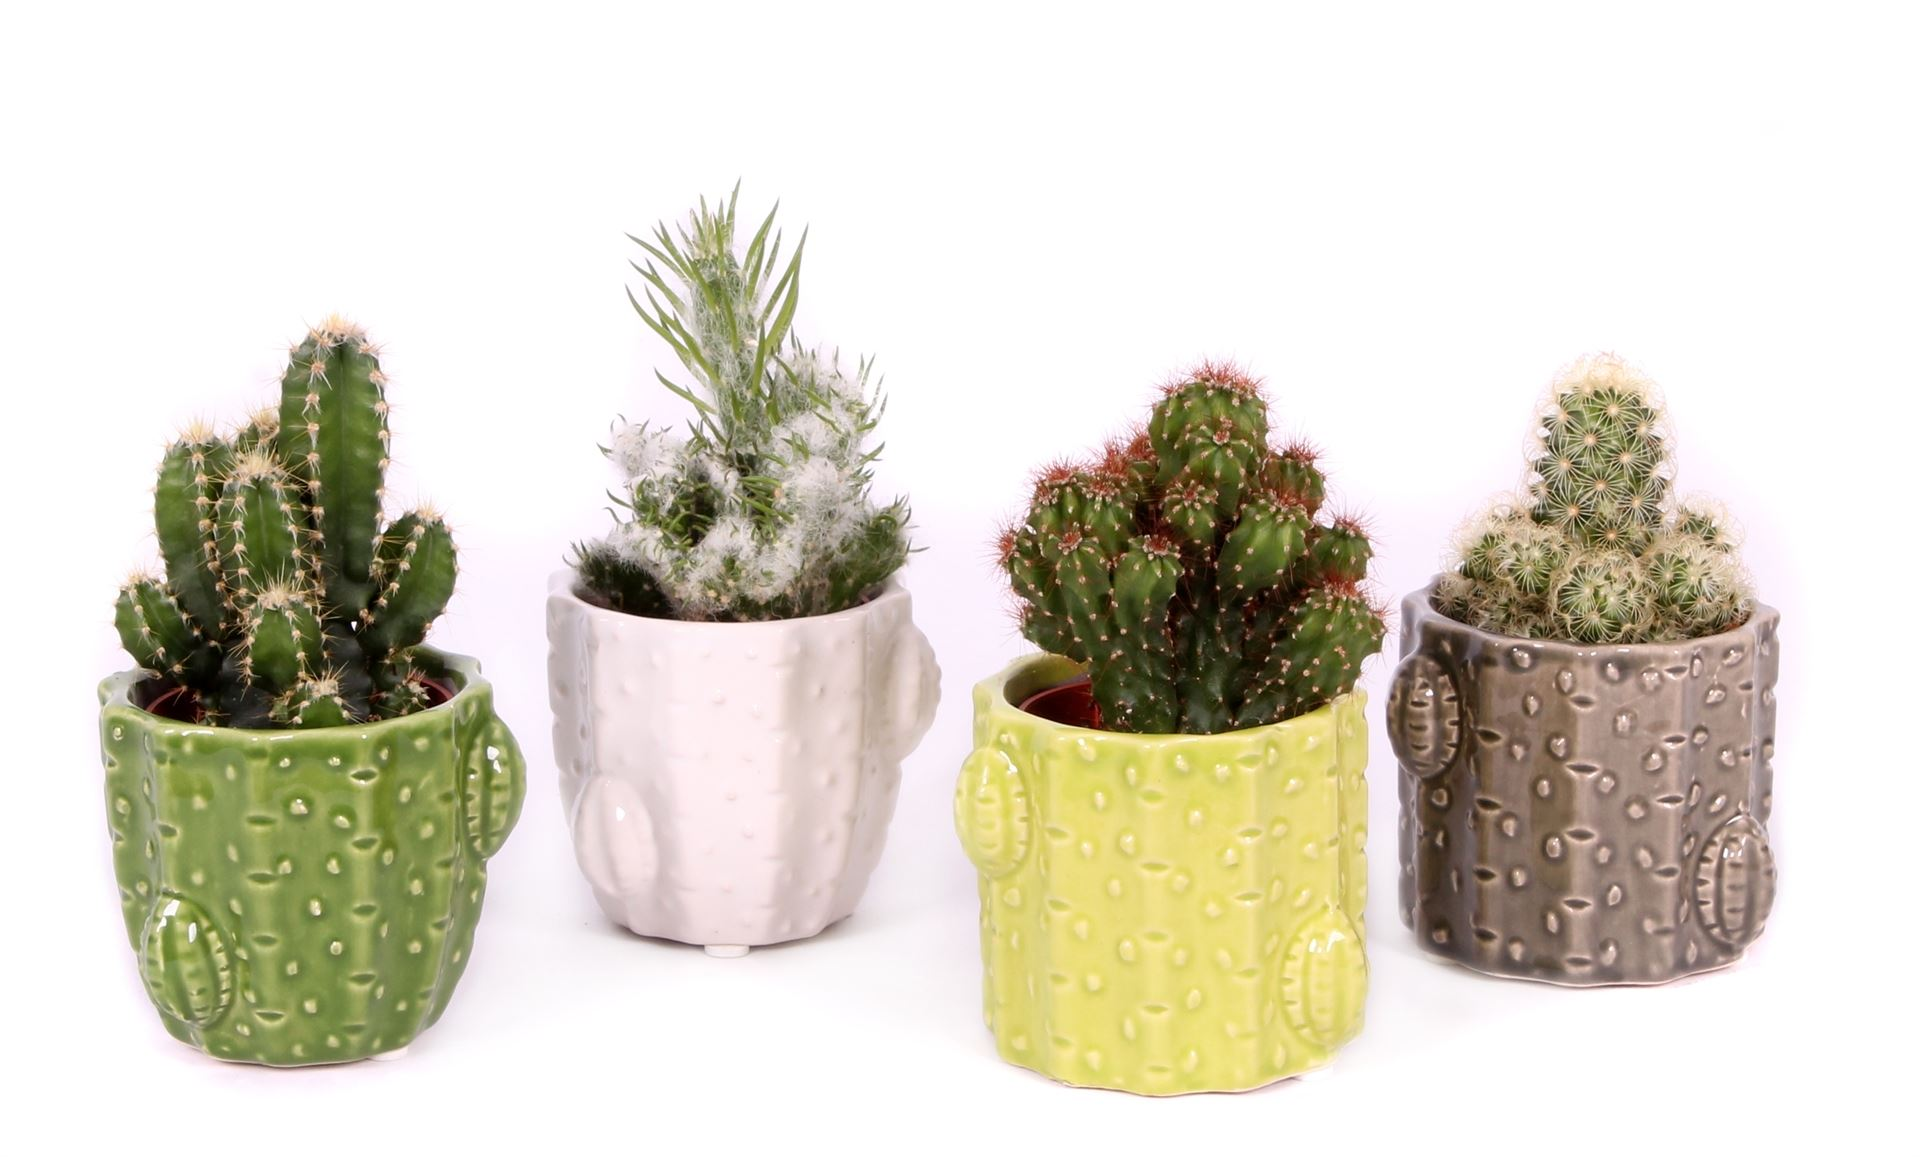 Cactus wedding gifts in pots